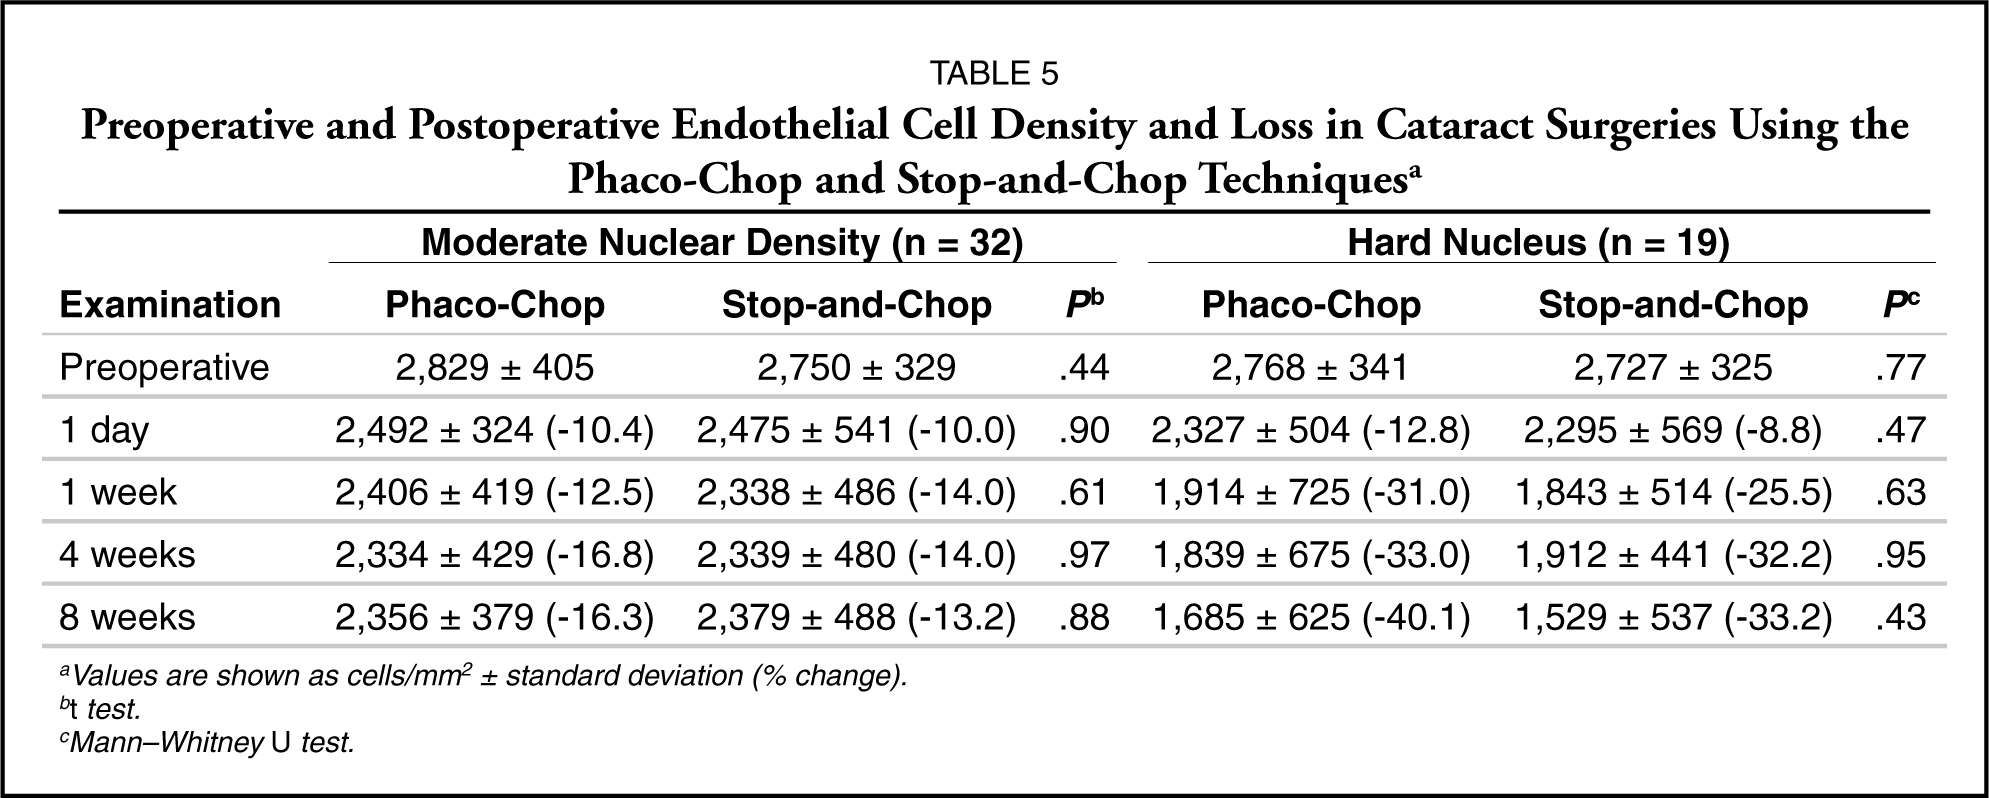 Ultrasound Energy in Phacoemulsification: A Comparative